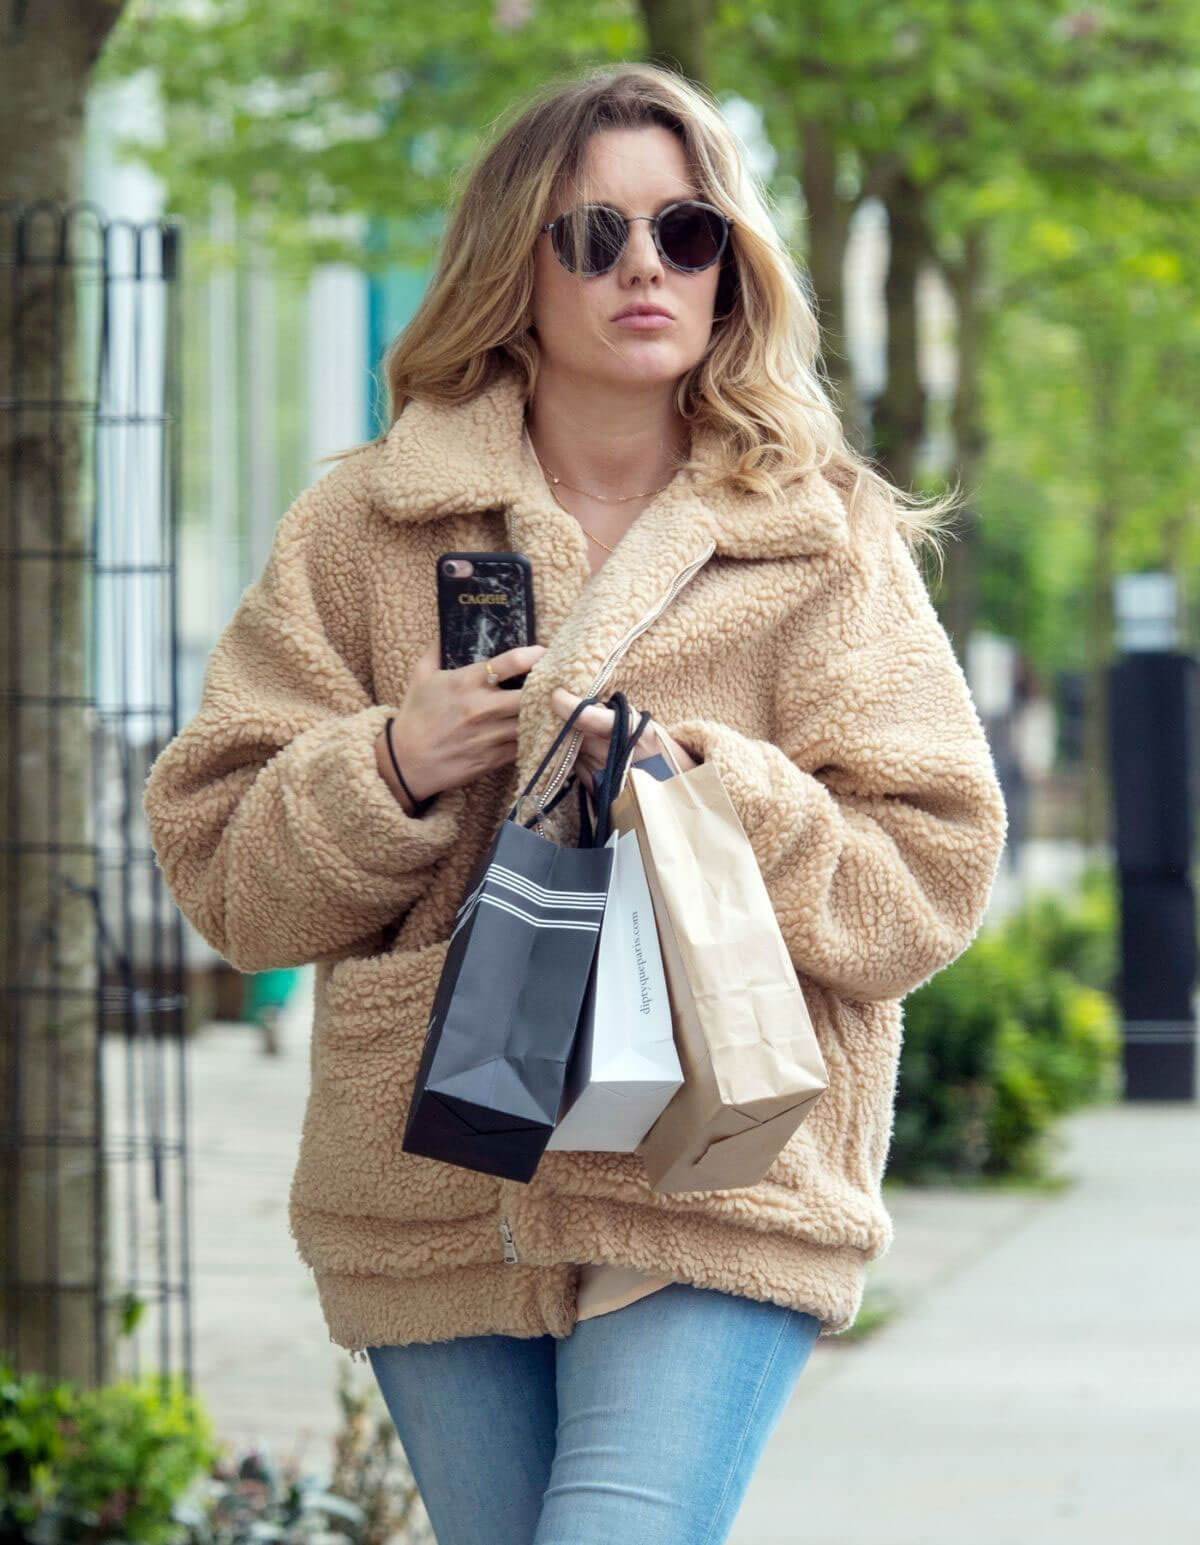 Caggie Dunlop Stills Out and About in London 2018/05/03 10